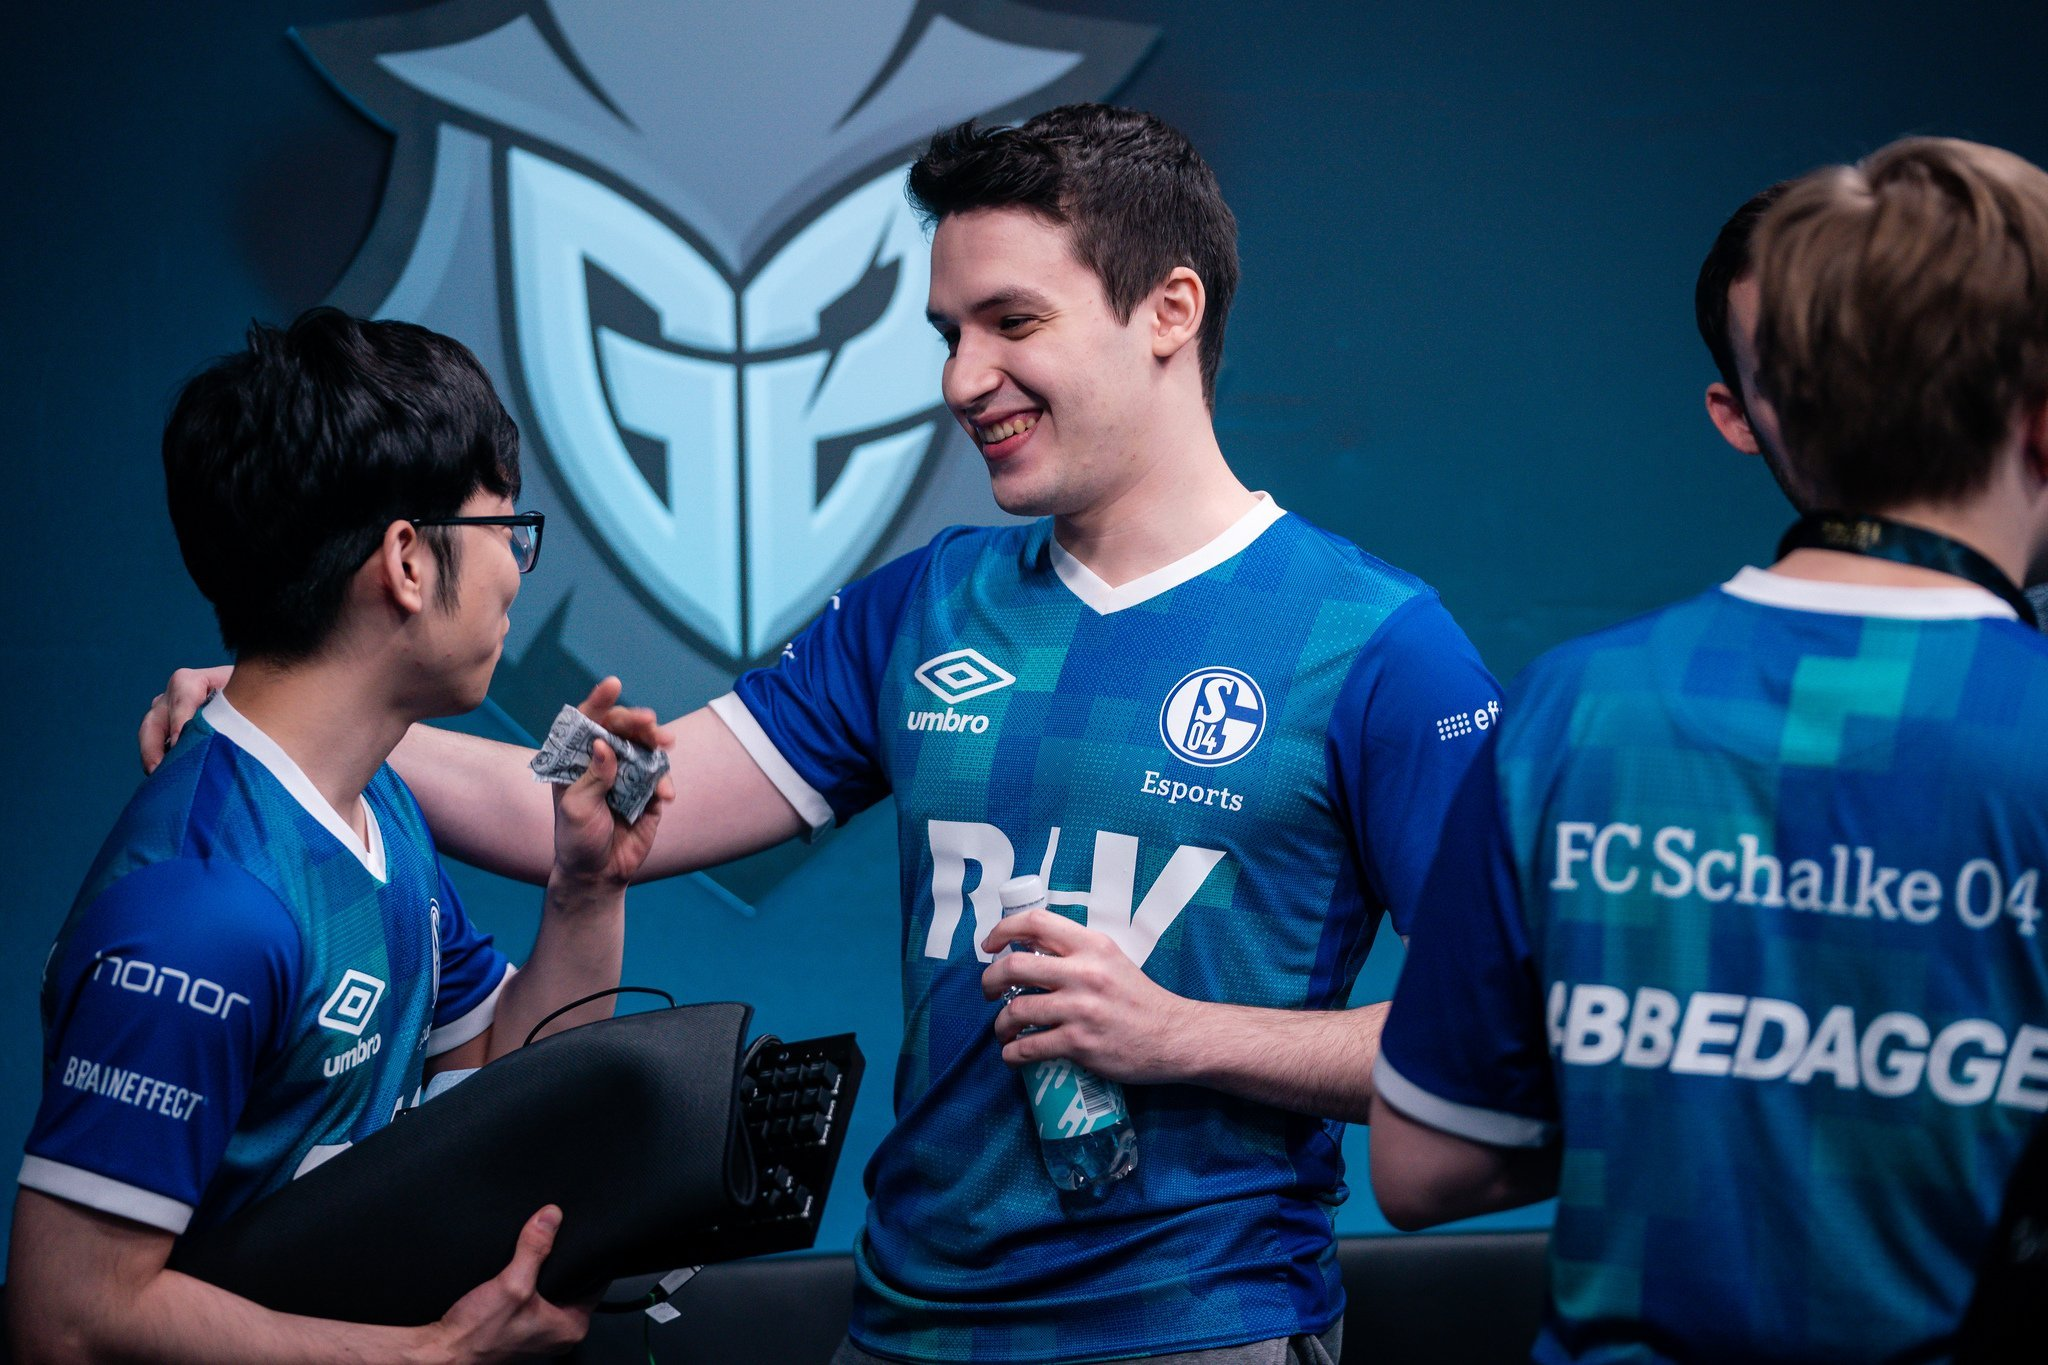 Schalke 04 could be forced to leave League of Legends